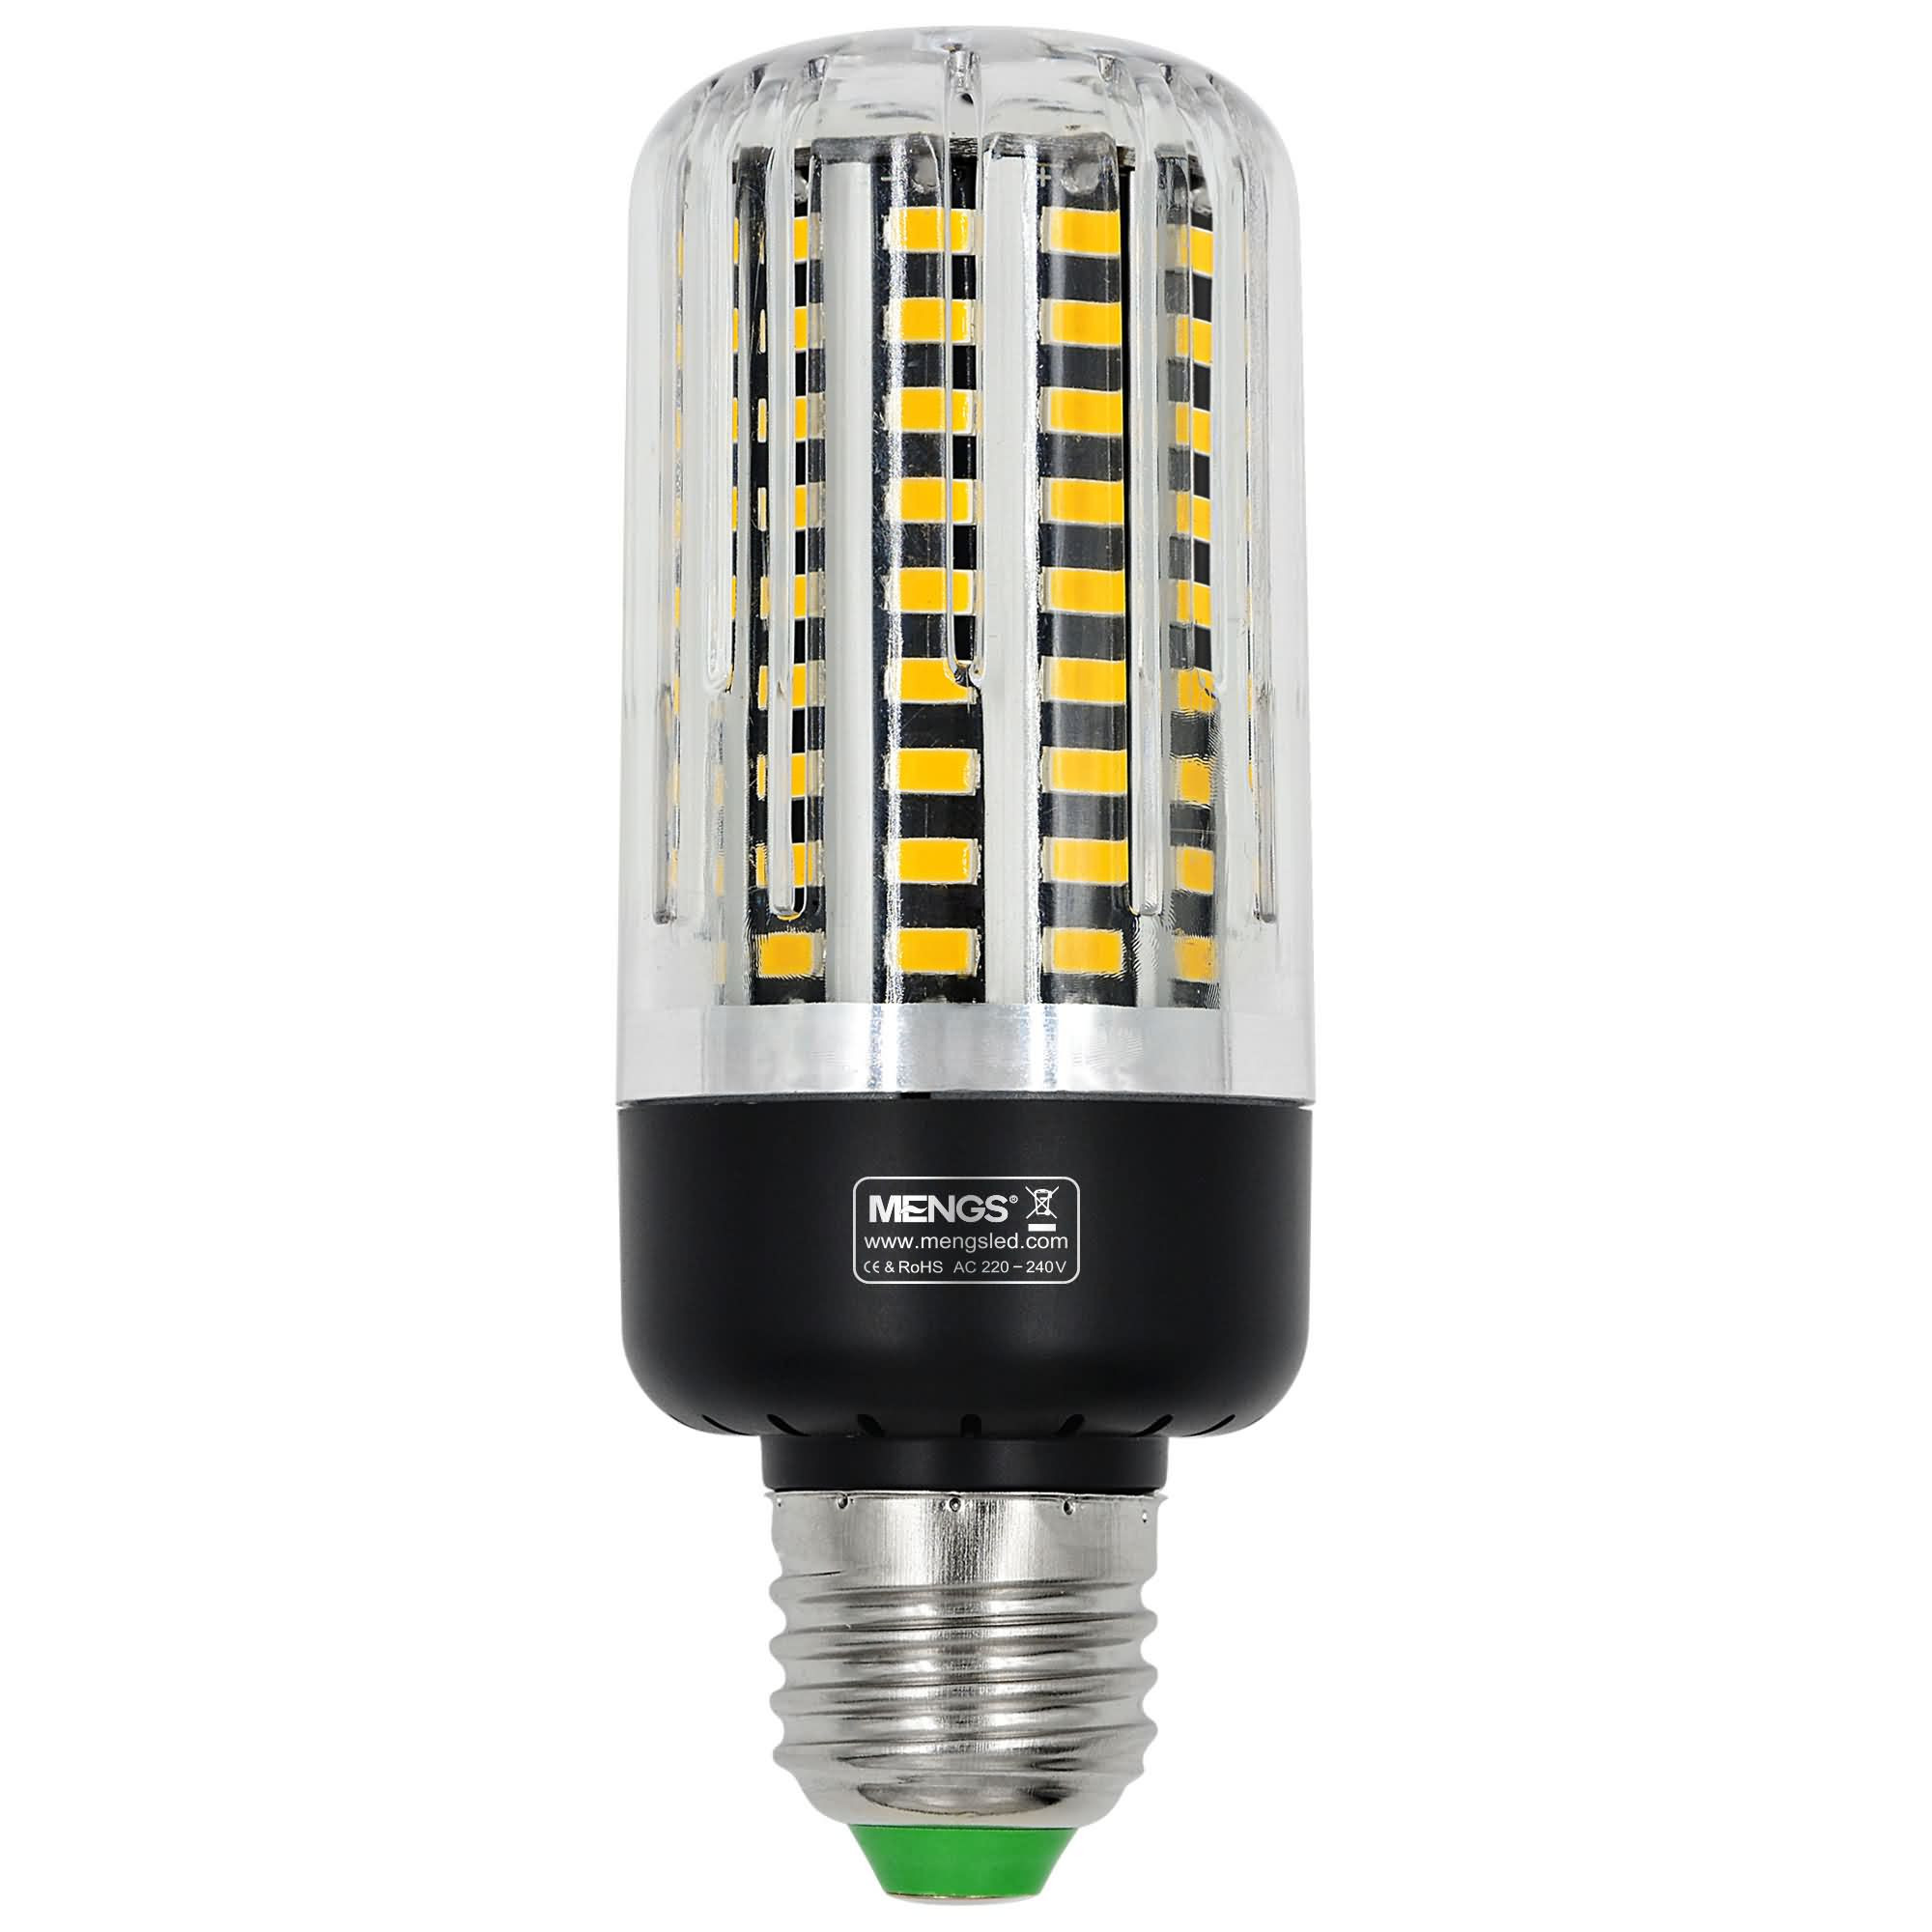 E27 14w Led Corn Light 102x 5733 Smd With Heat Sink Led Bulb Lamp In Cool White Energy Saving